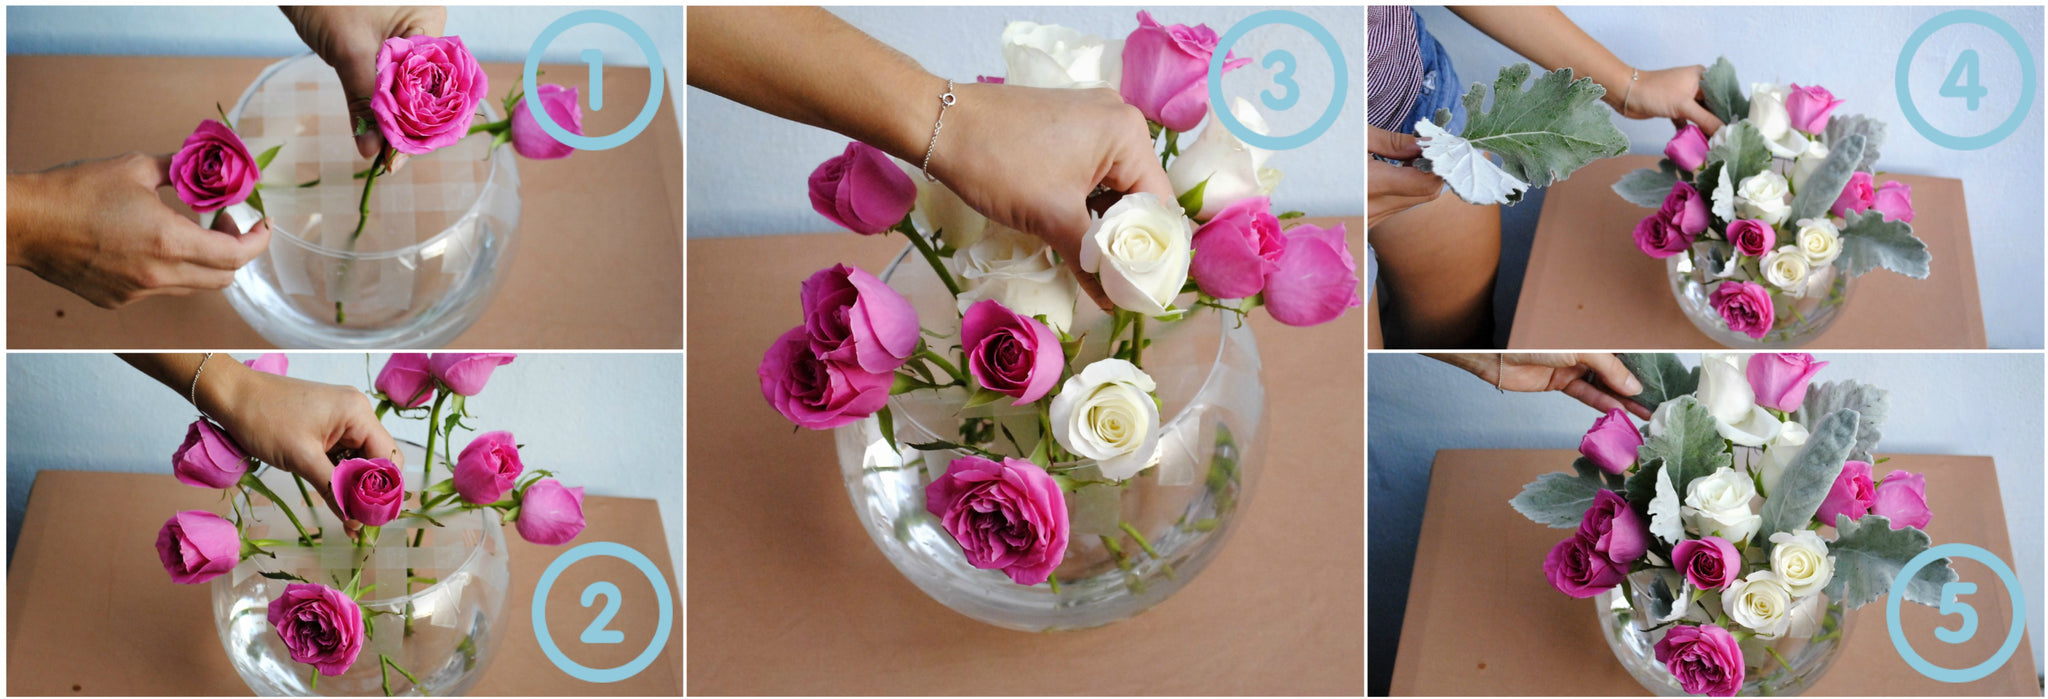 How to create a DIY Flower Centerpiece - Pink and White roses